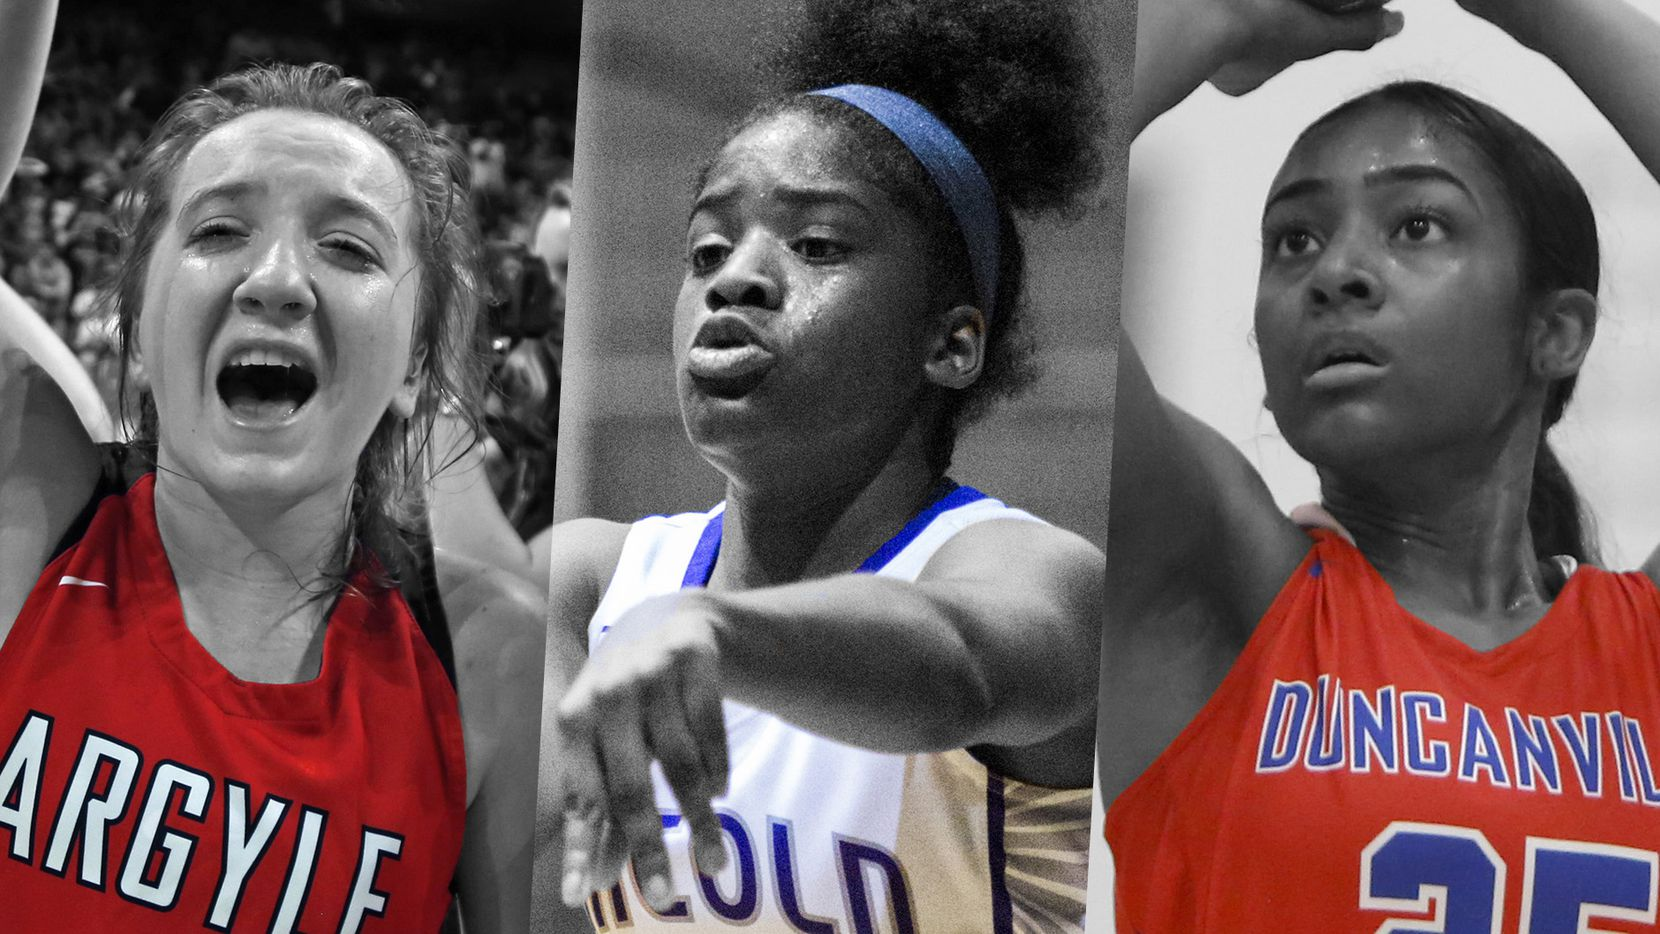 From left to right: Argyle's Rhyle McKinney, Lincoln's Alexis Brown and Duncanville's Deja Kelly.